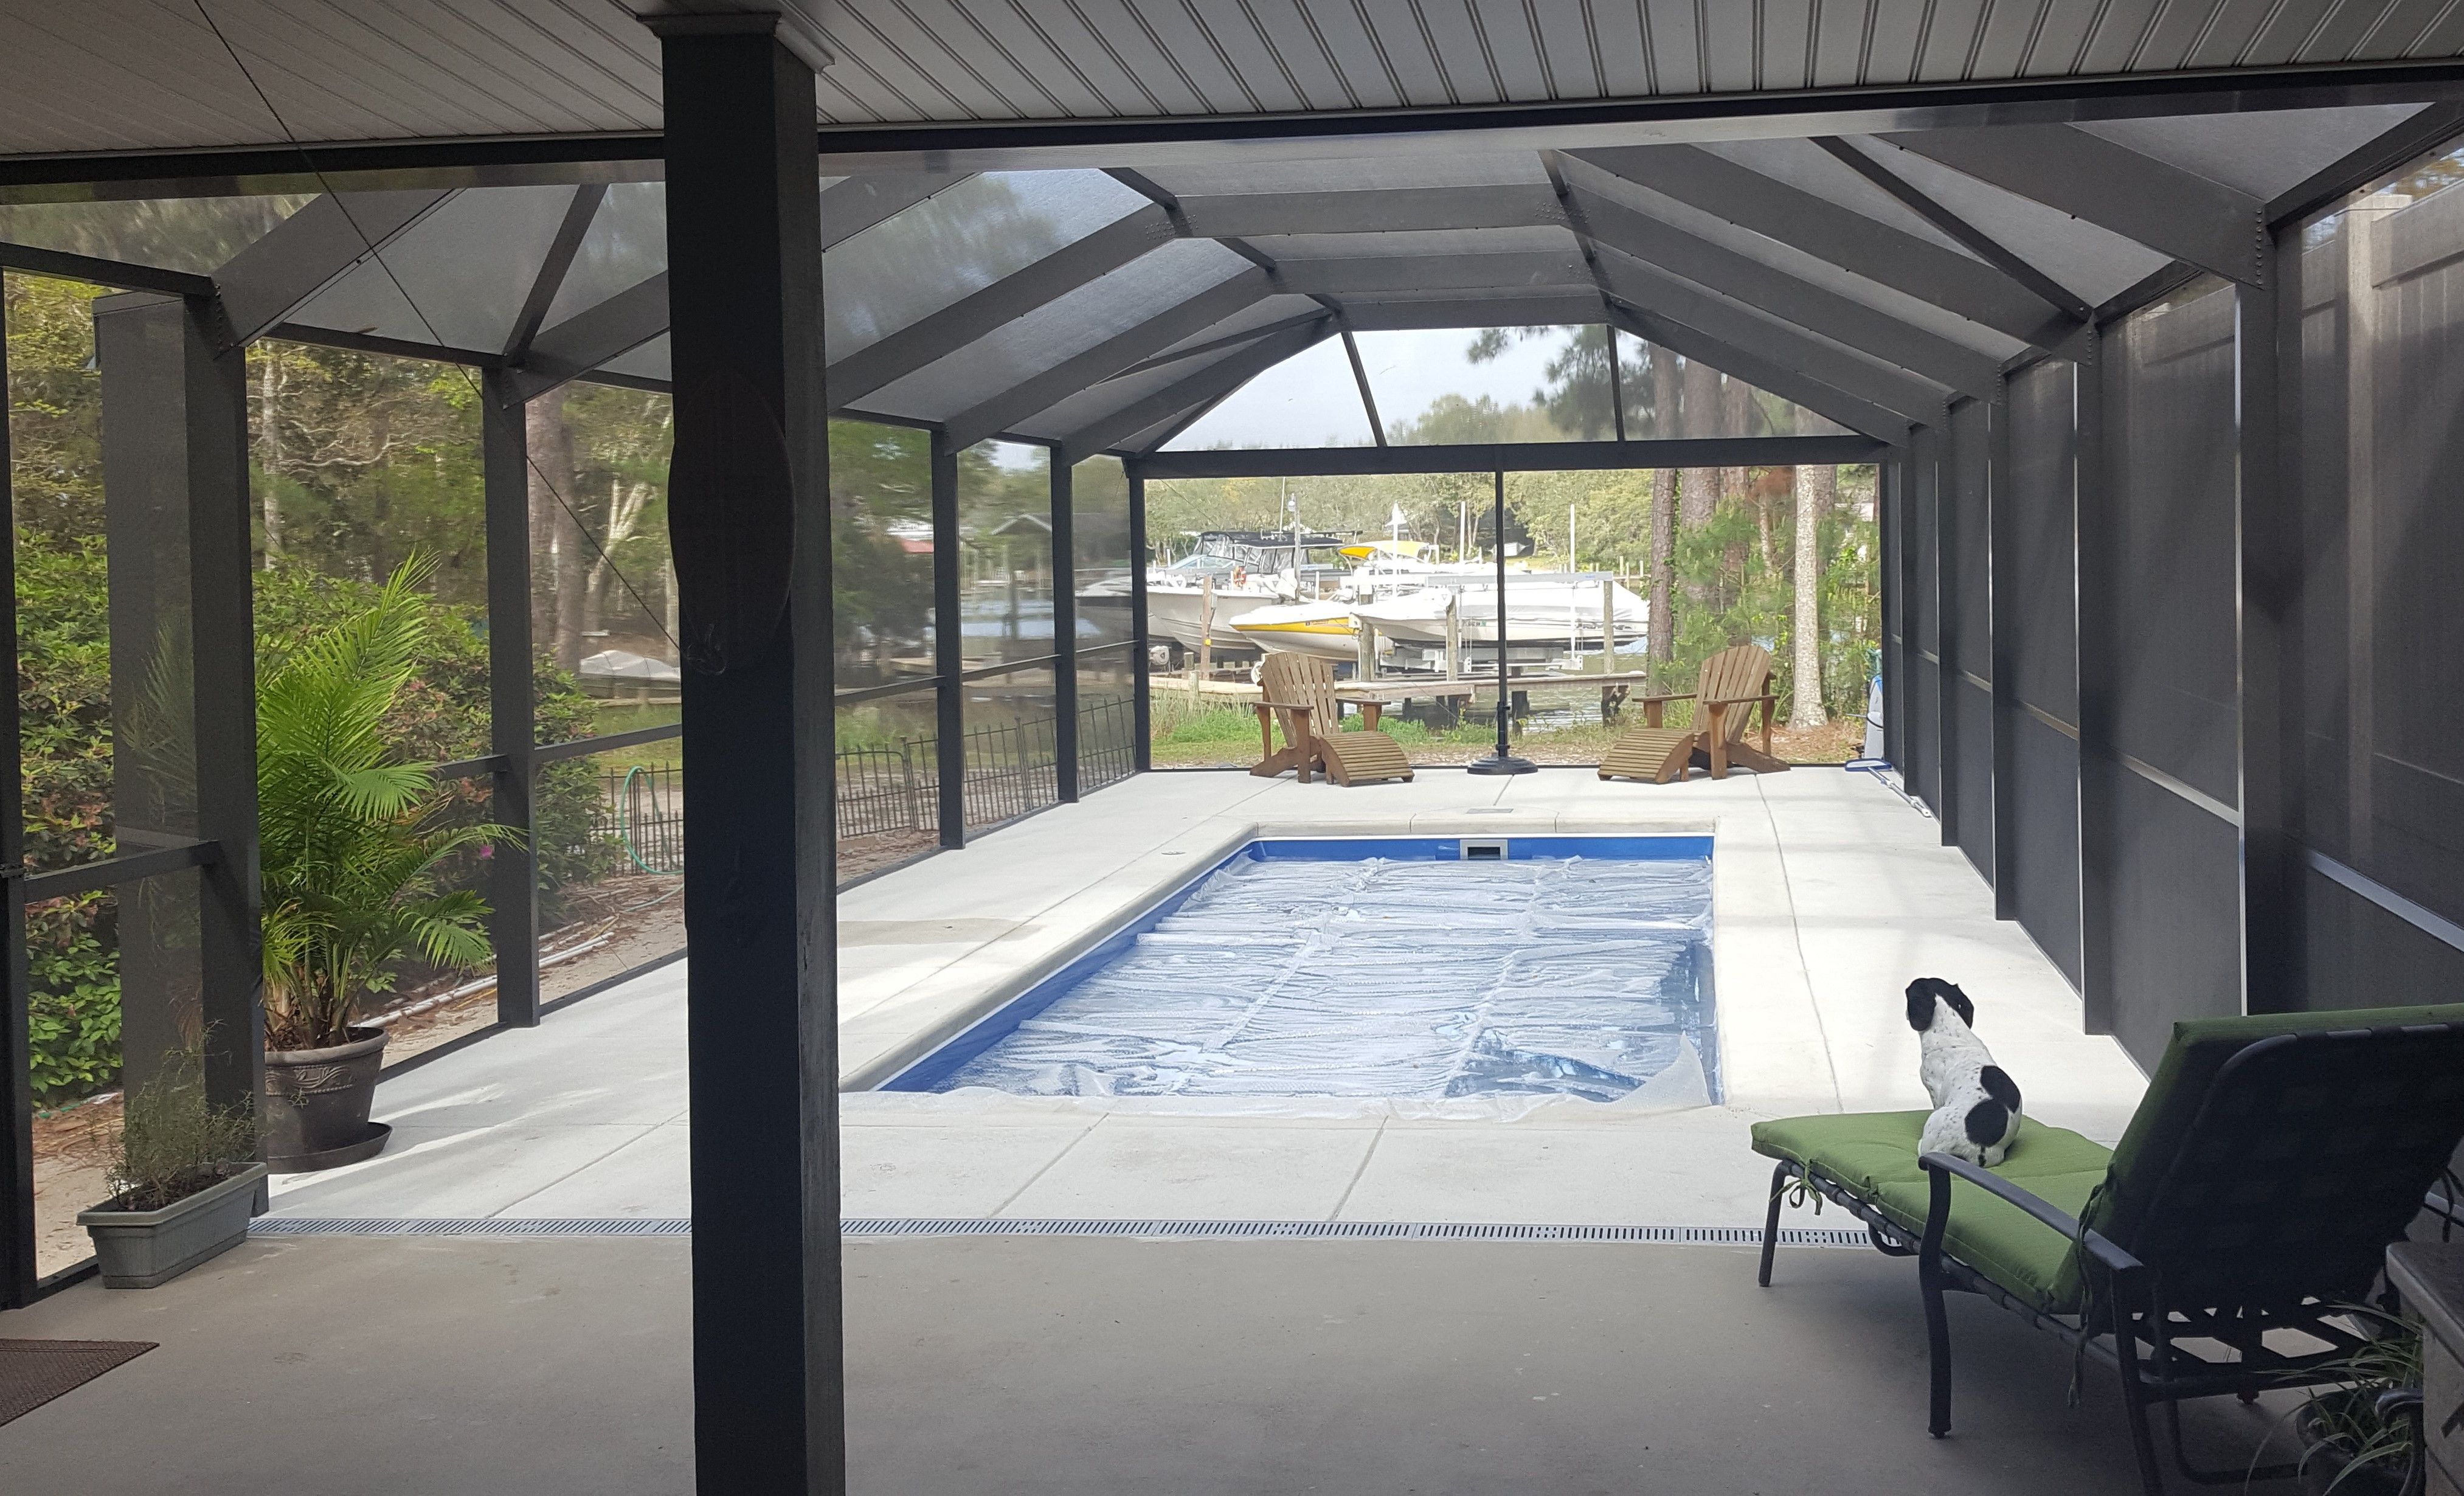 Florida Is Already Celebrating Summer With Temperatures In The Upper 70s And 80s Which Means That It S Fiberglass Swimming Pools Leisure Pools Swimming Pools